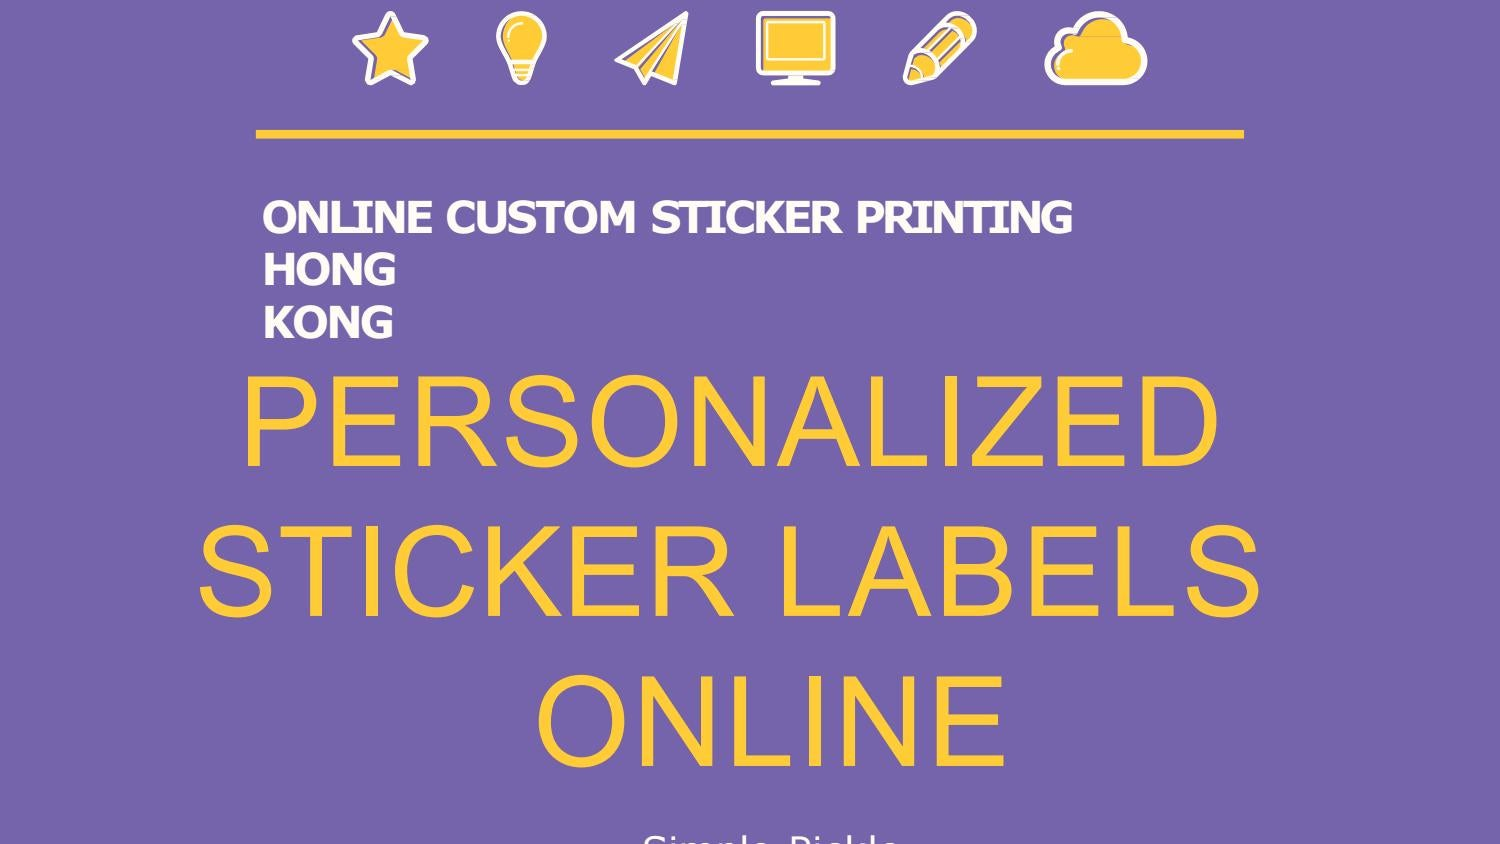 Personalized sticker labels online simple pickle by simplepickle355 issuu